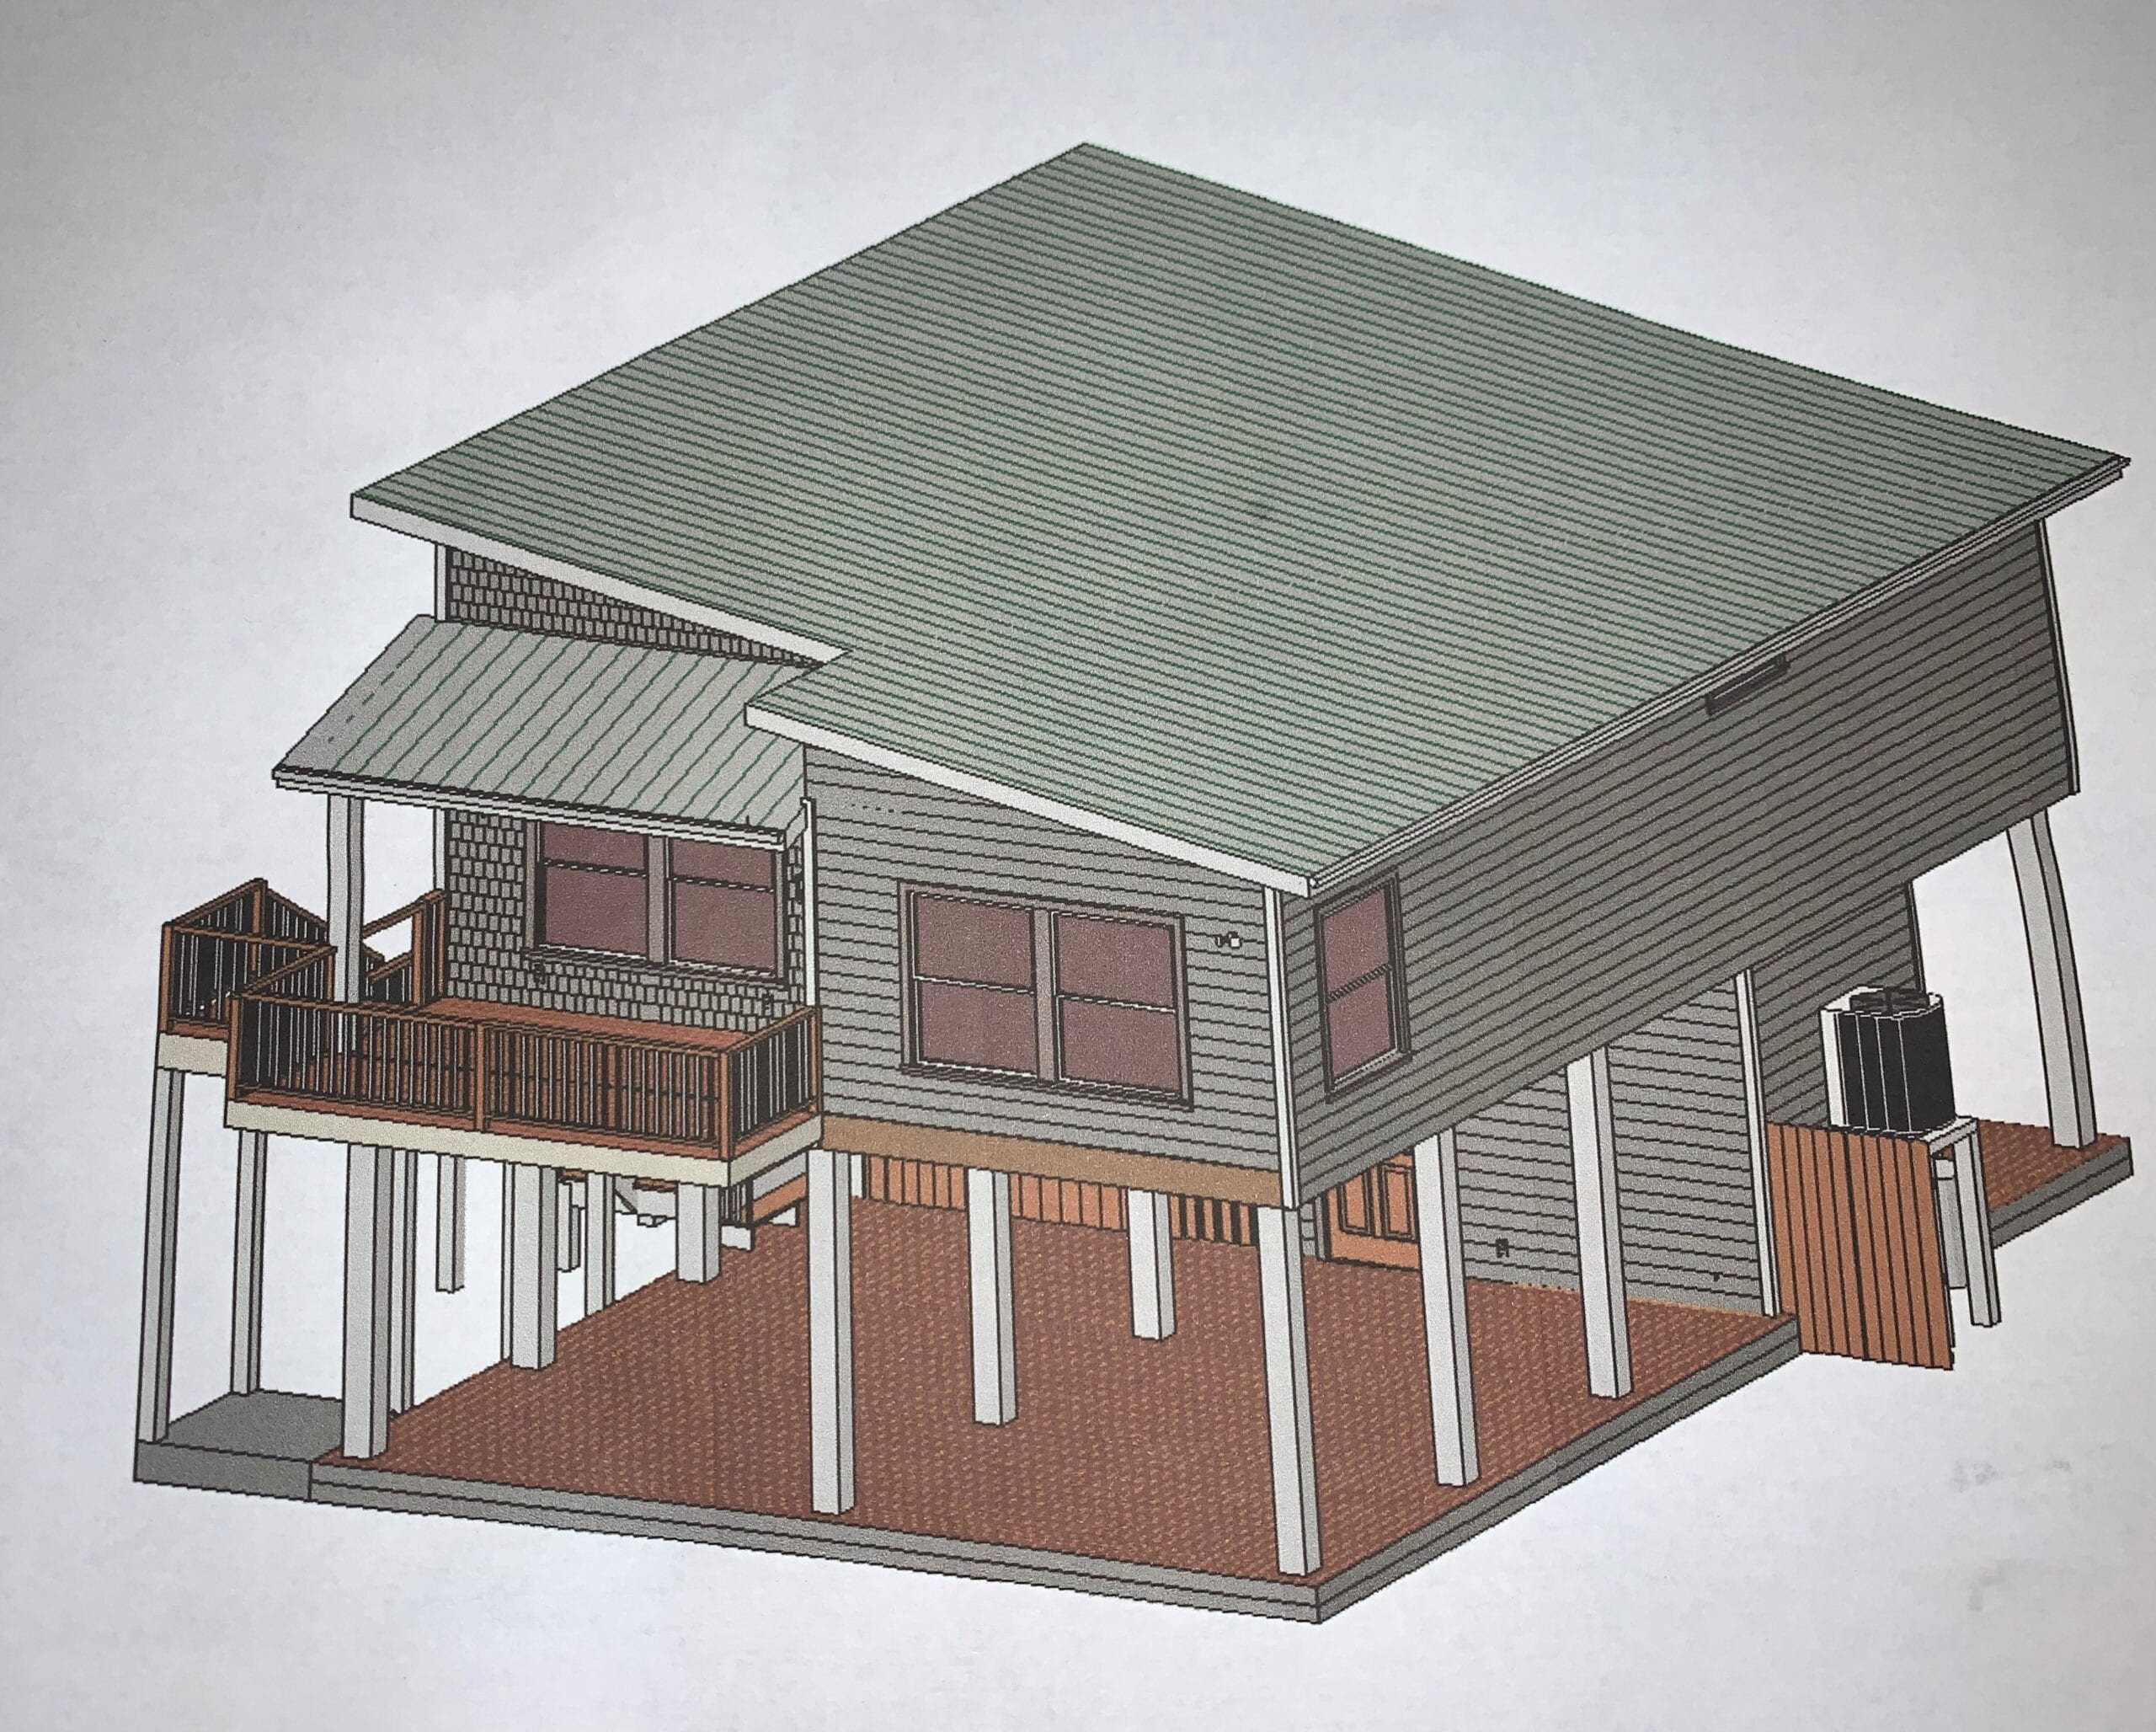 rendering of house